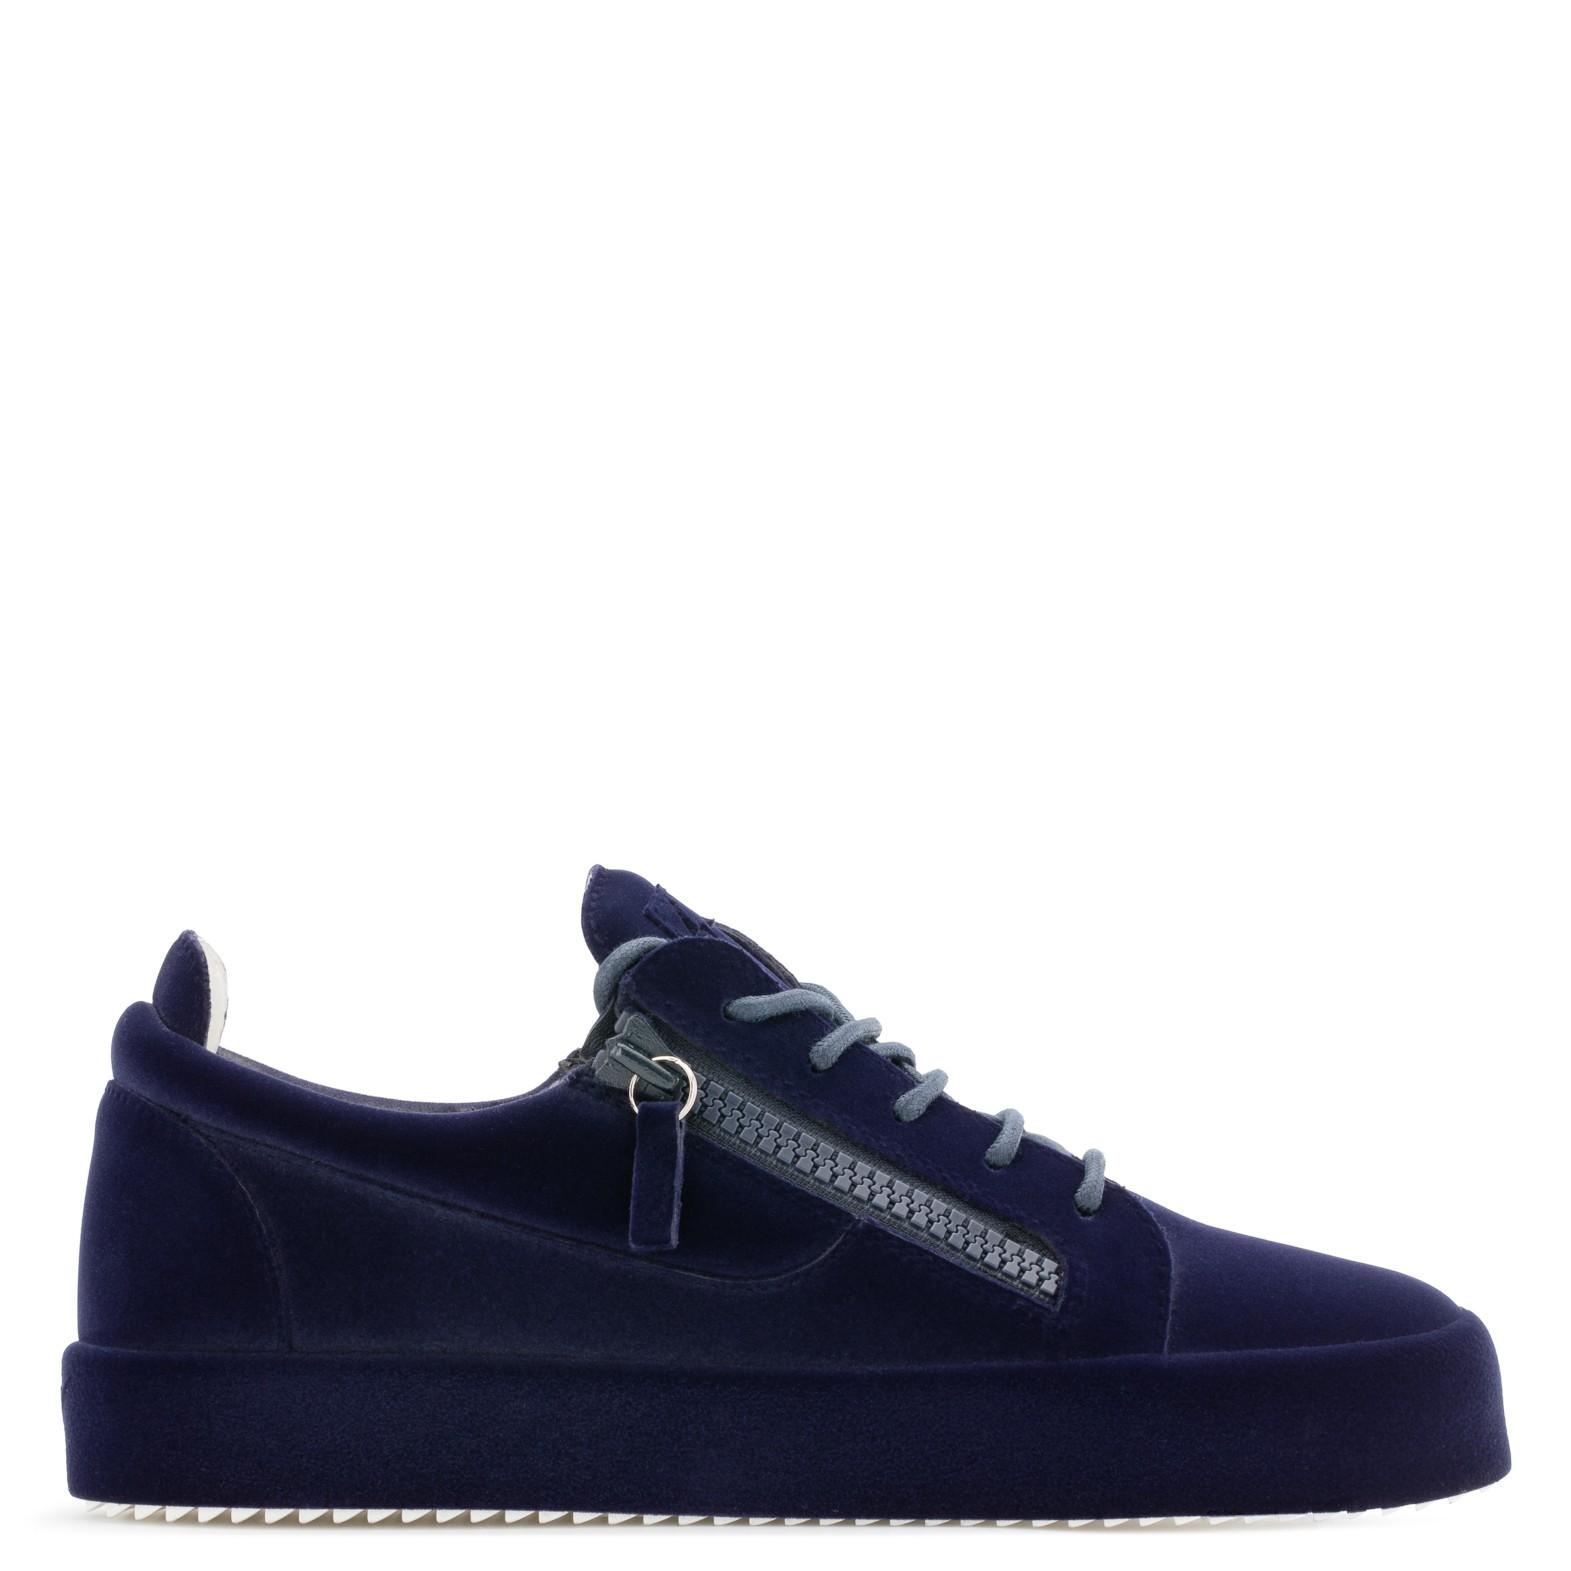 41d317d242199 Giuseppe Zanotti The Unfinished in Blue for Men - Save 63% - Lyst